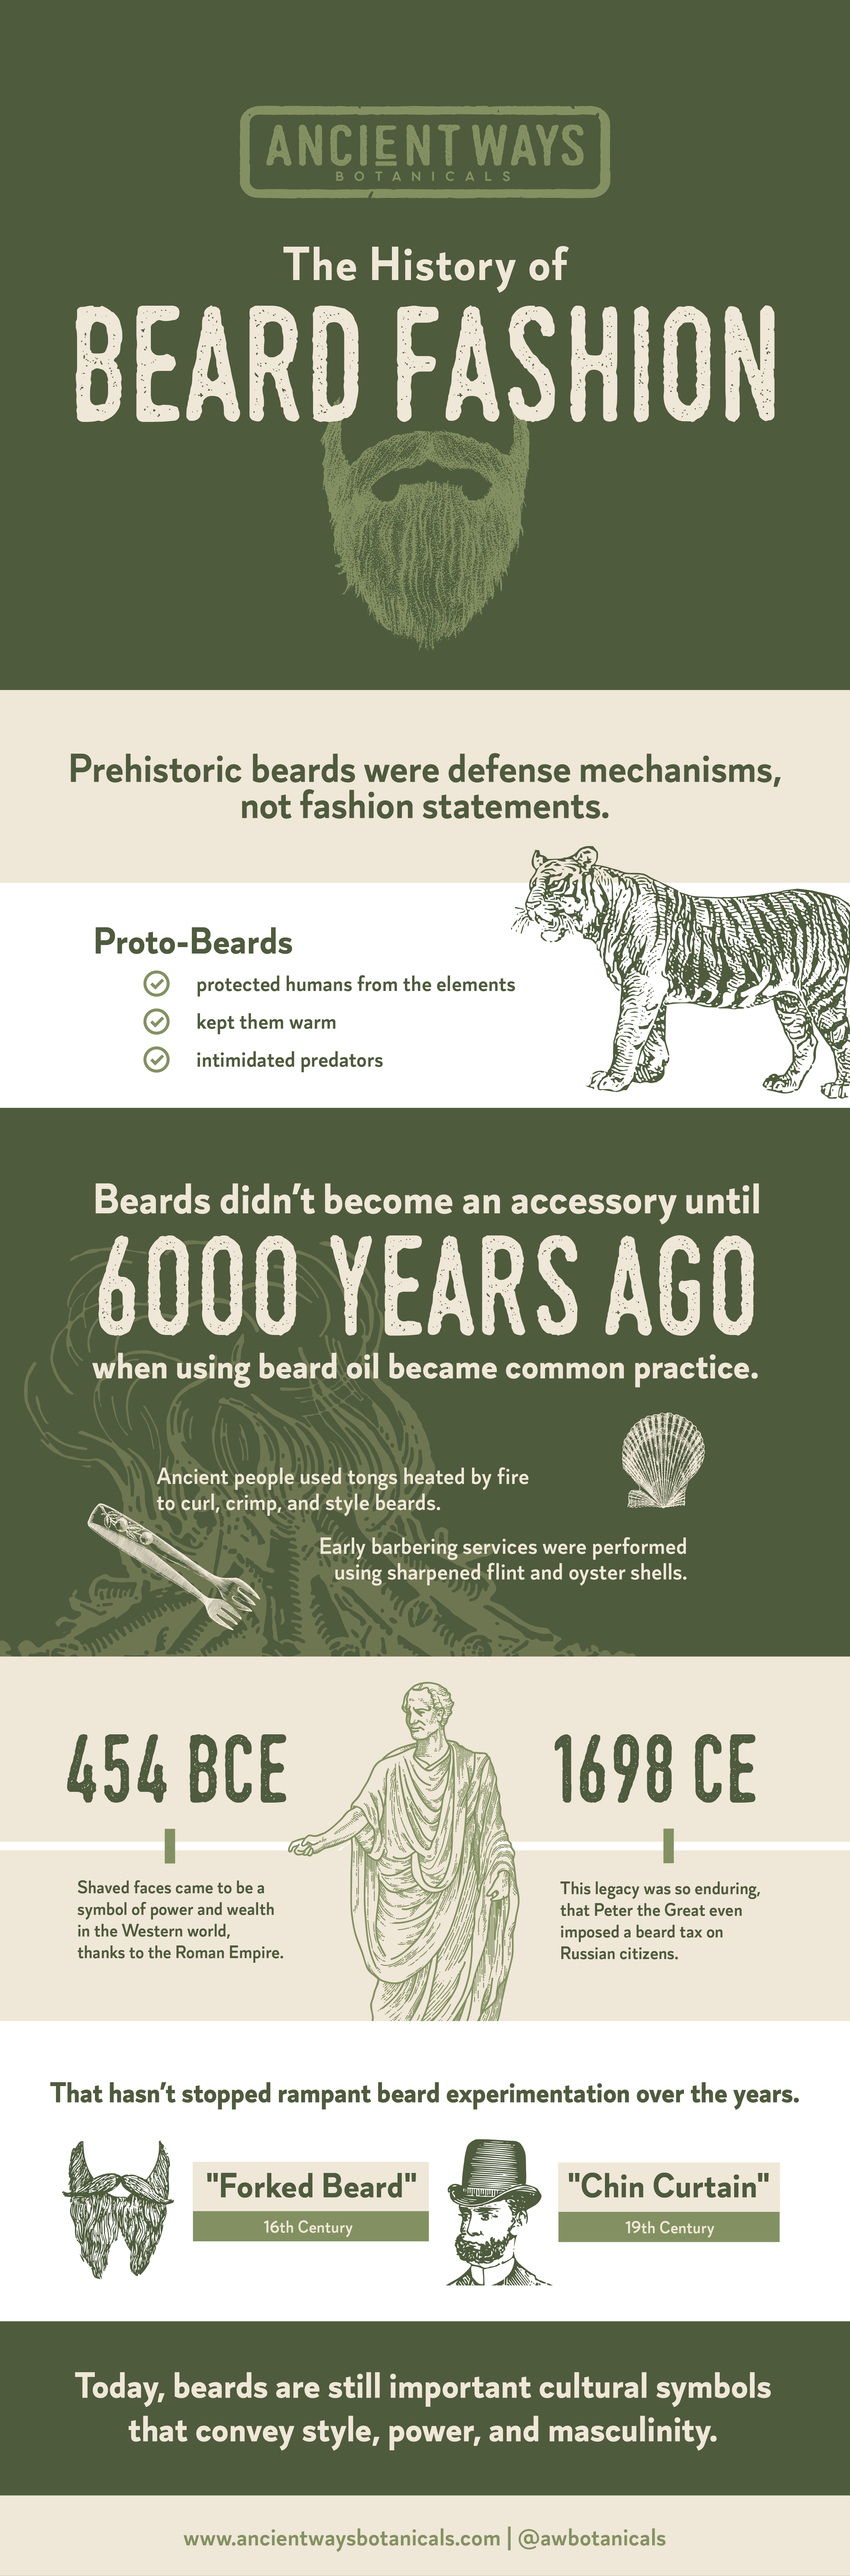 A brief history of beard fashion infographic.